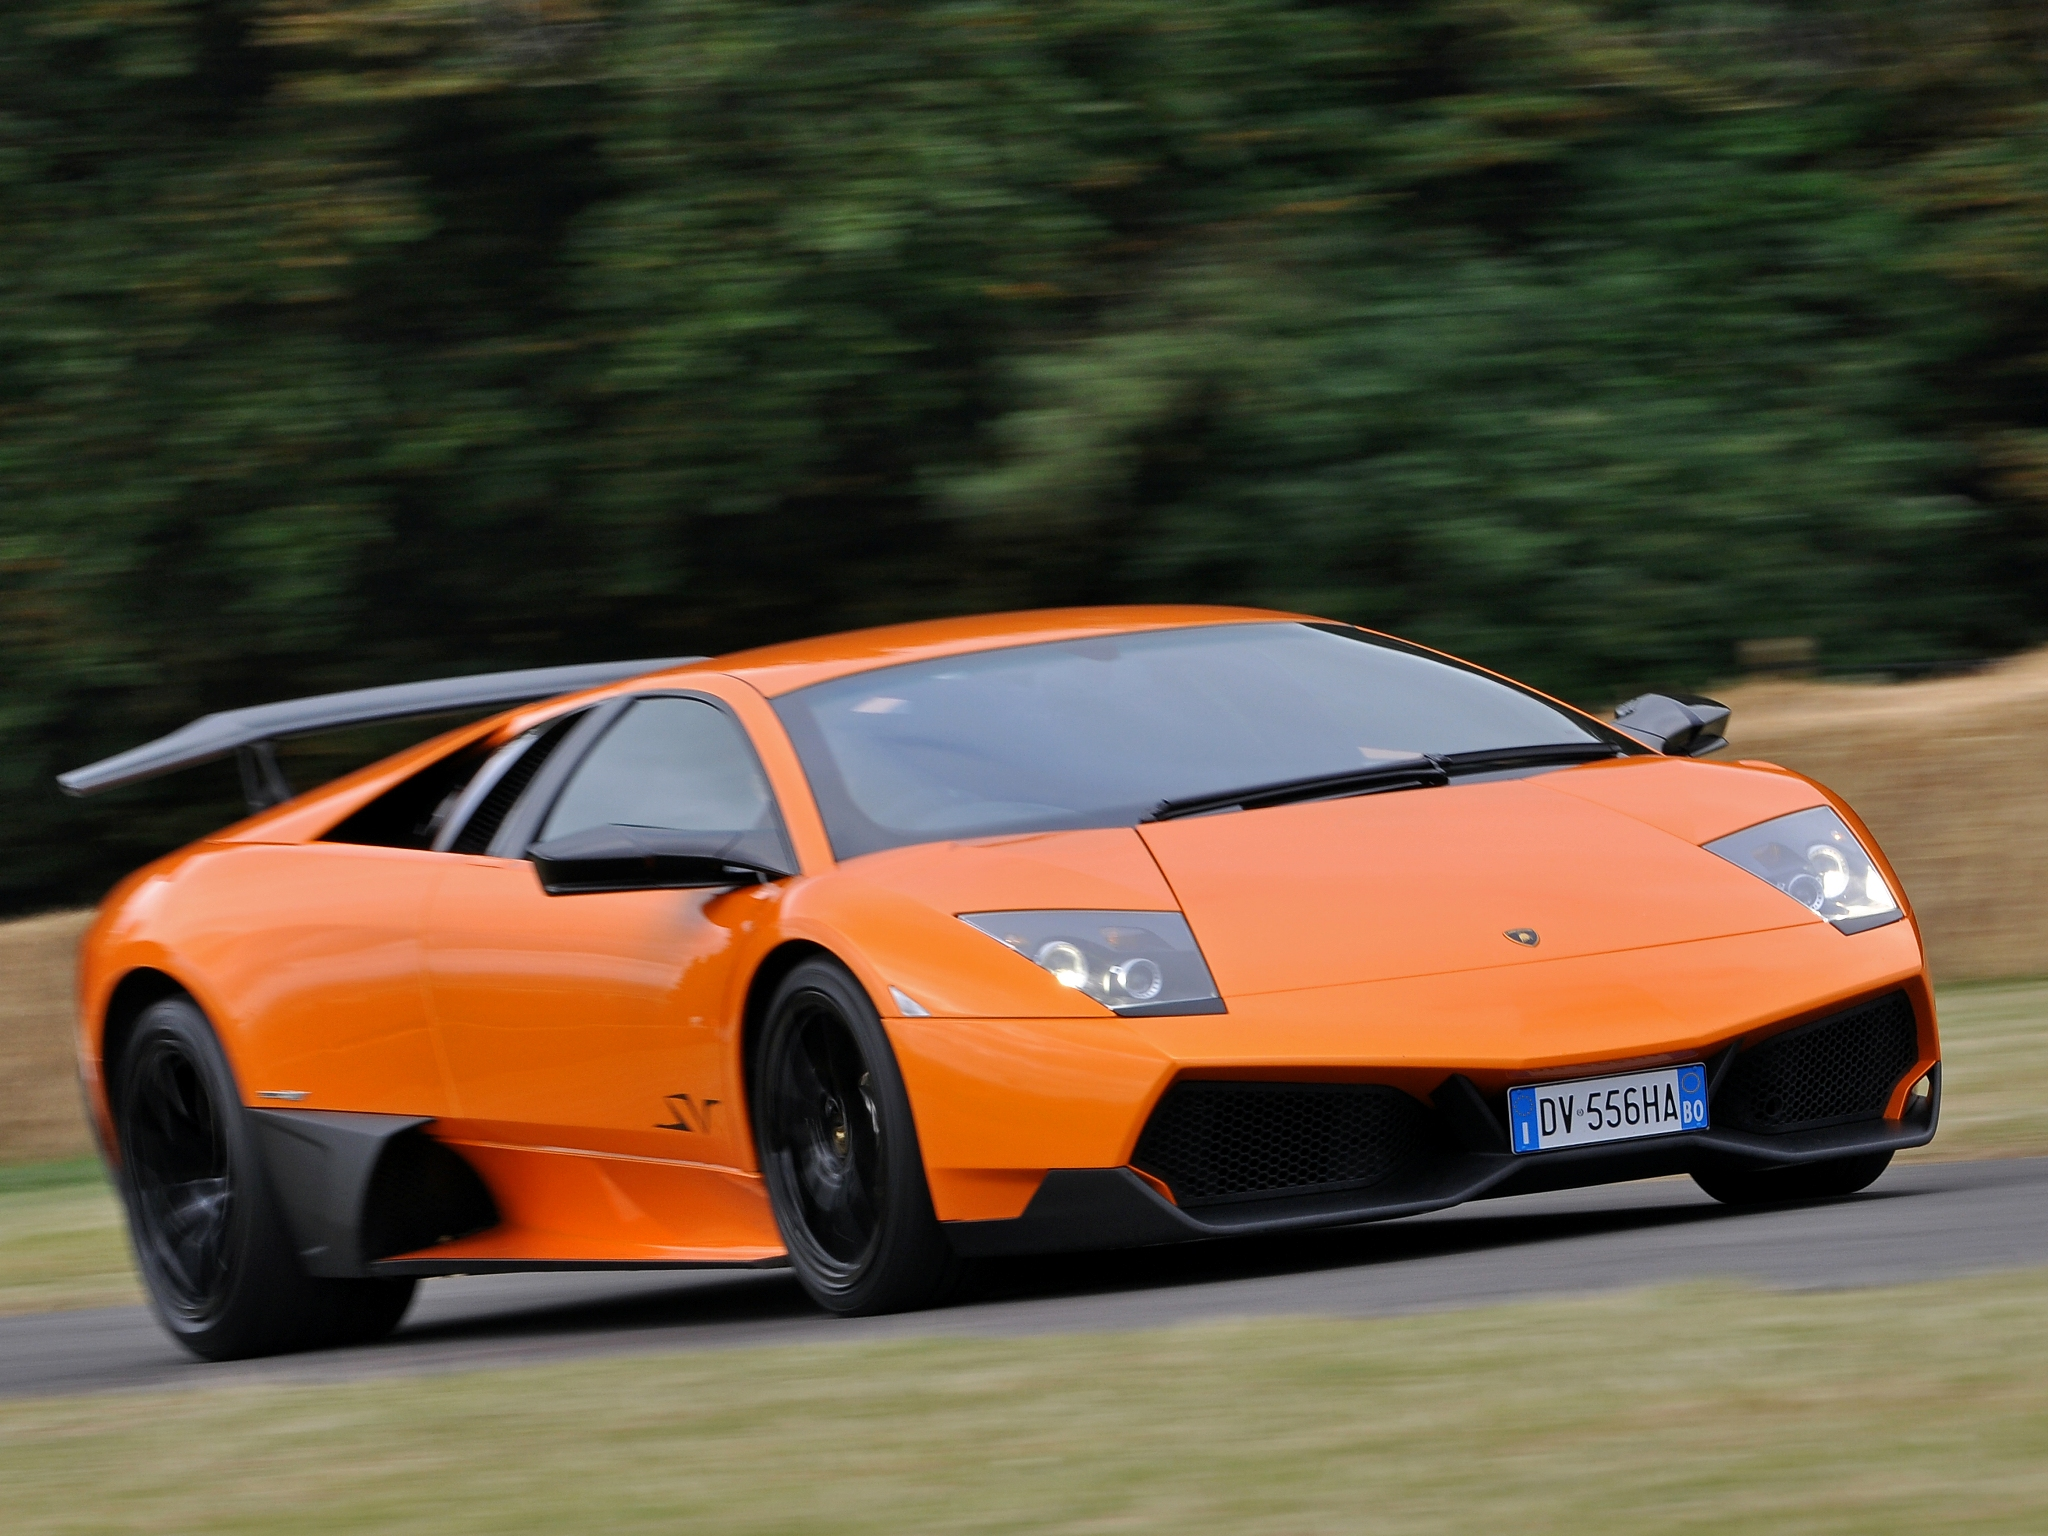 2009 2010 Lamborghini Murcielago Lp 670 4 Superveloce Top Speed